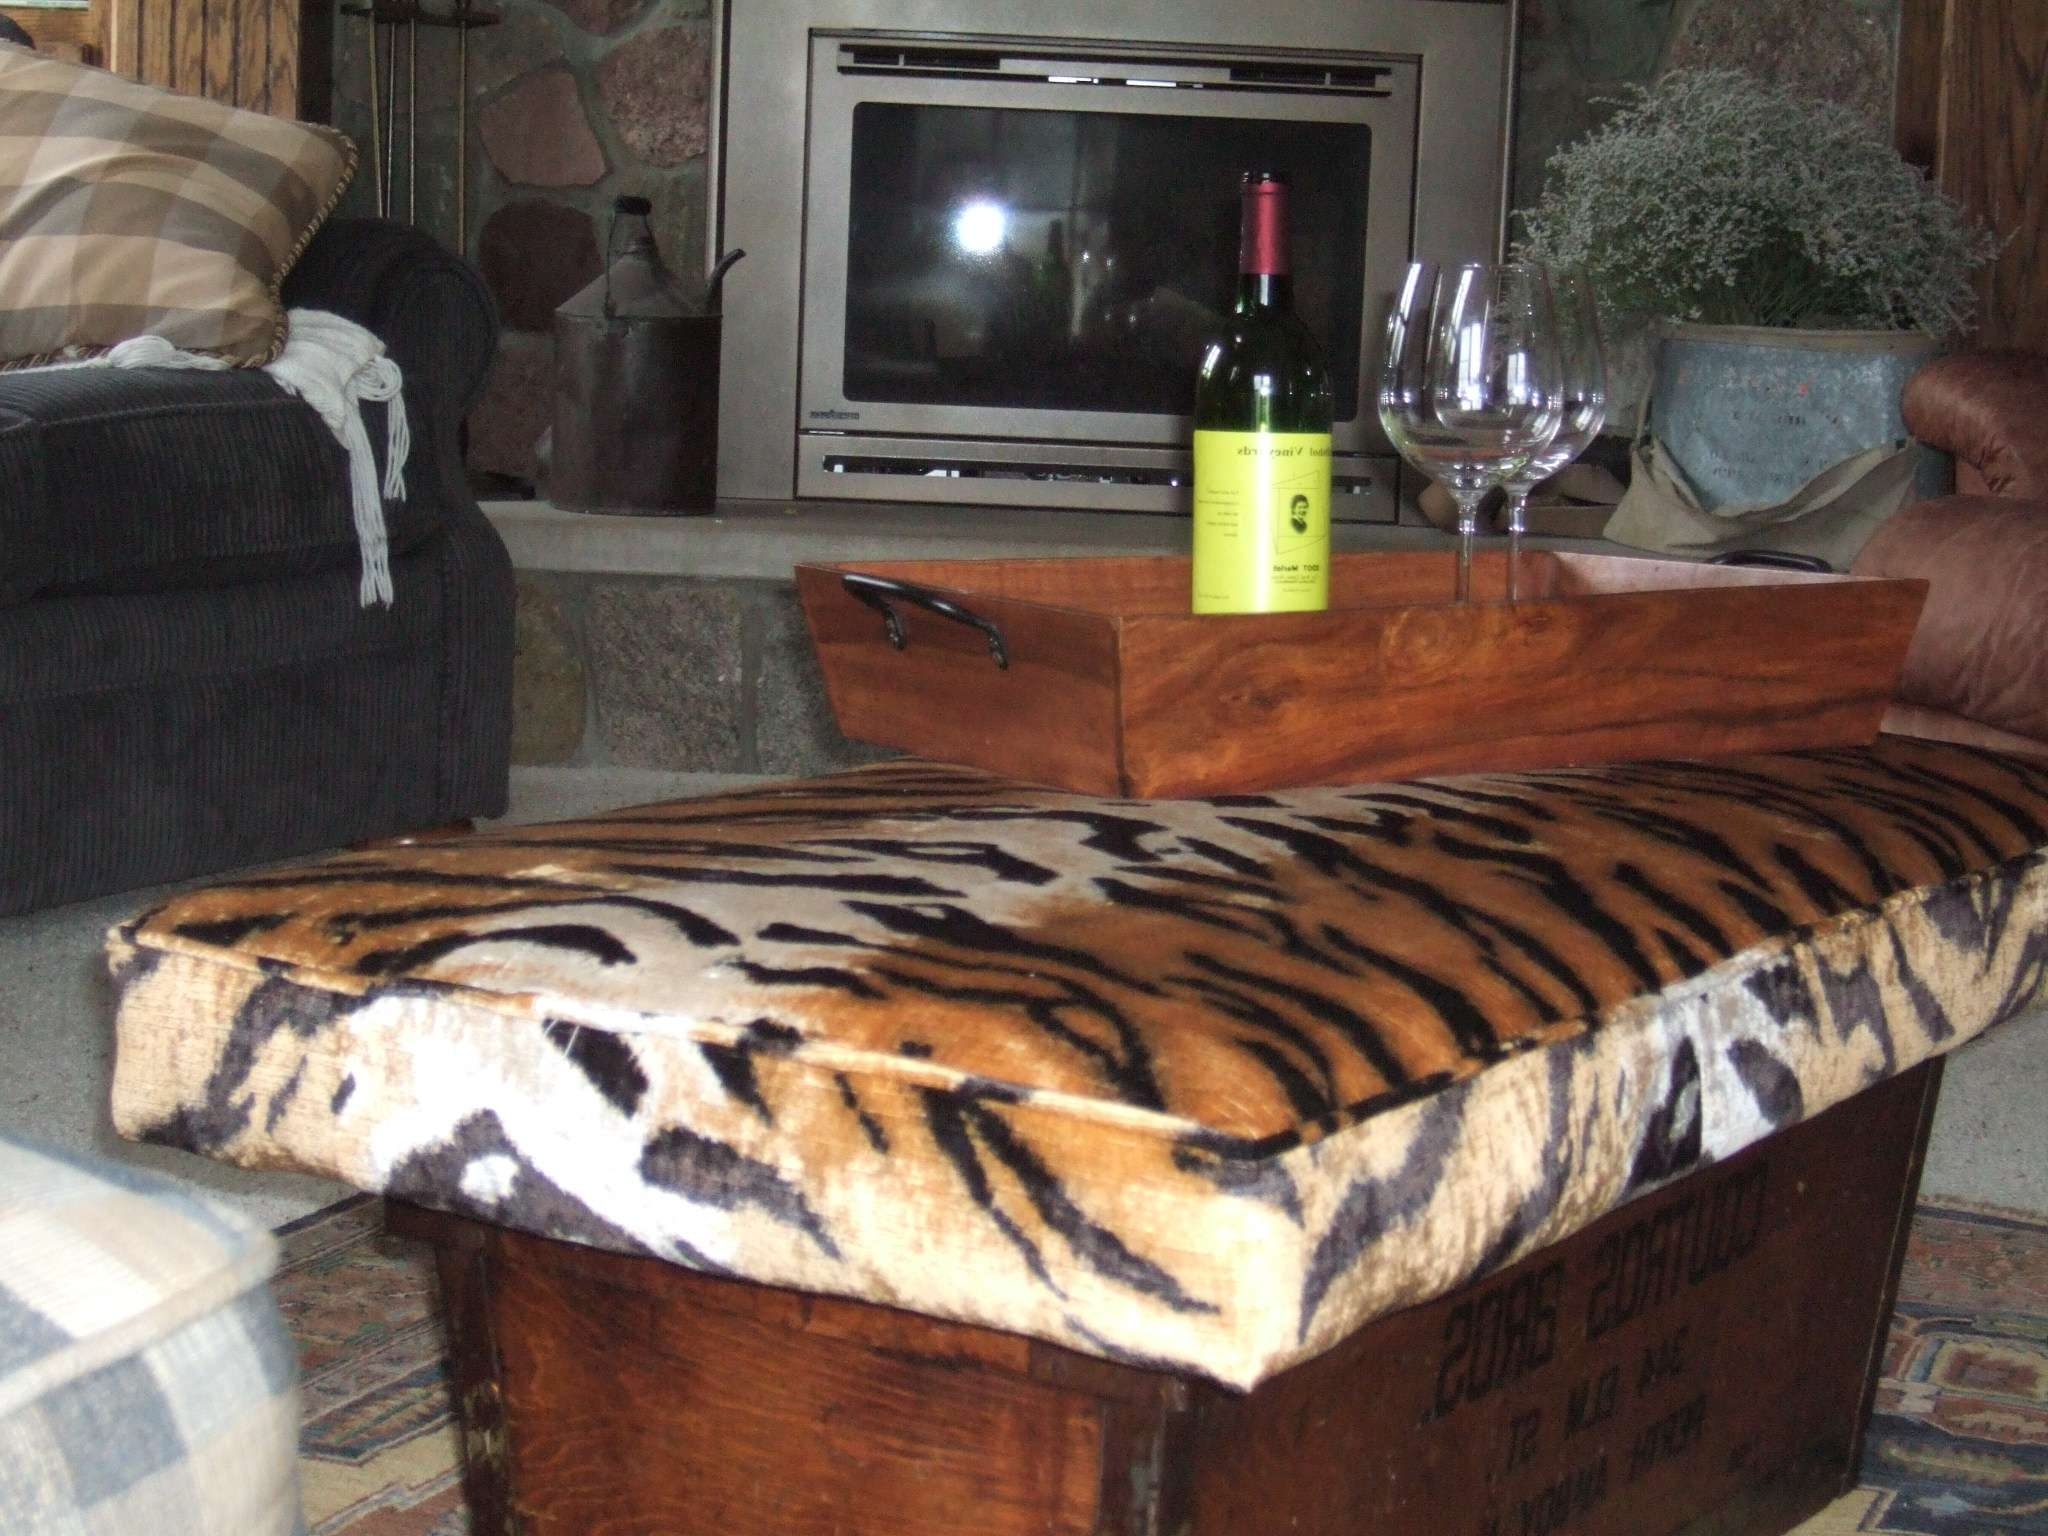 Upholstered Cushion Footstool Doubles As Coffee Table – Sew What With Regard To Current Animal Print Ottoman Coffee Tables (View 19 of 20)